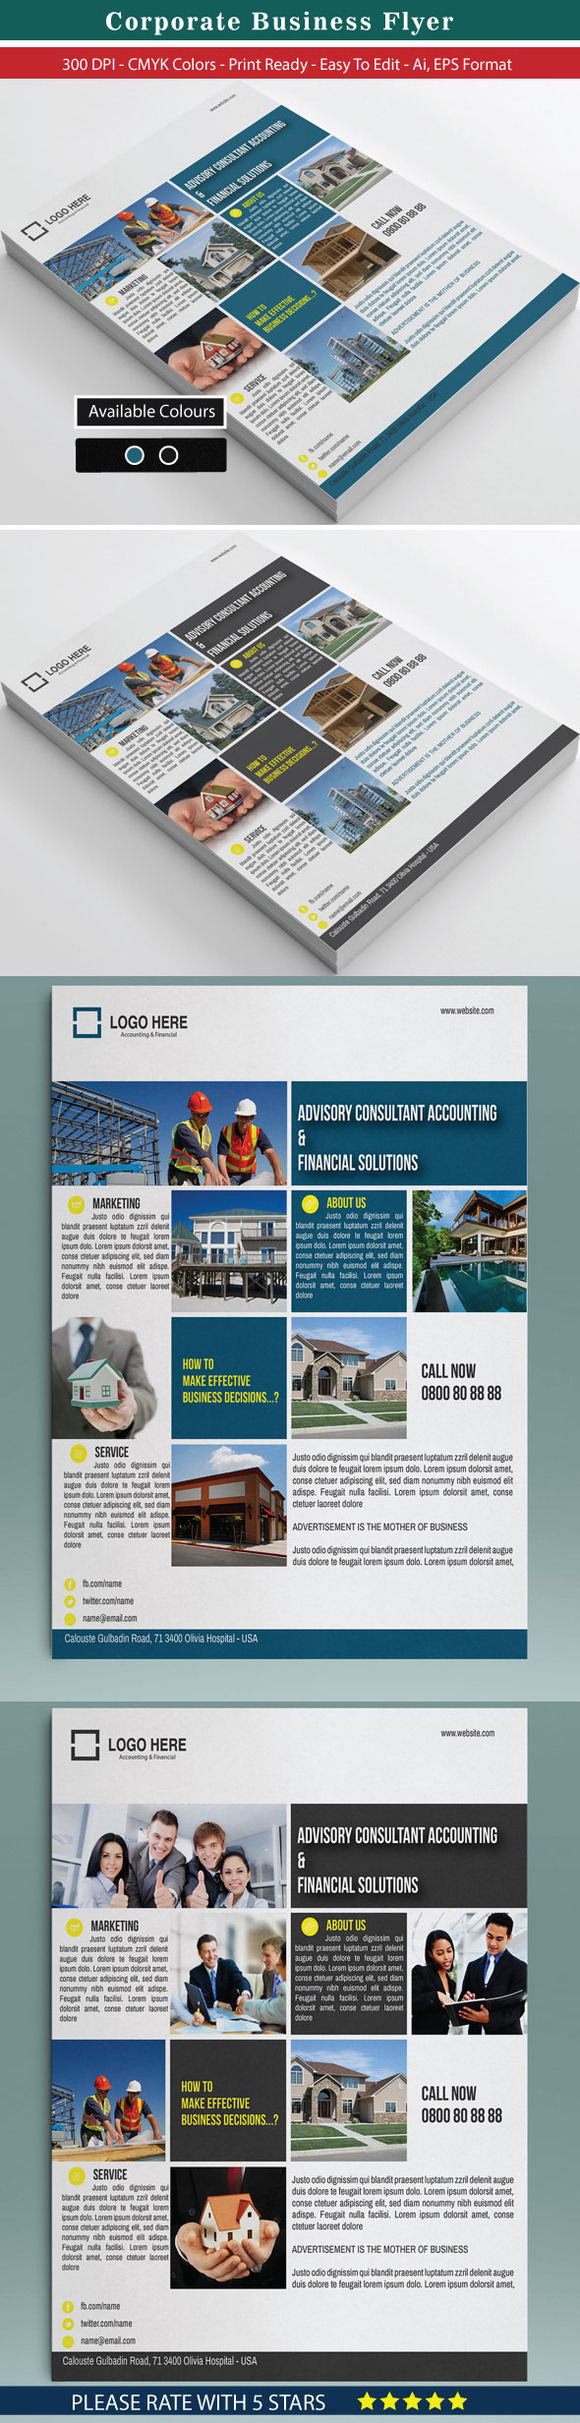 30 Corporate Business Flyer Bundle